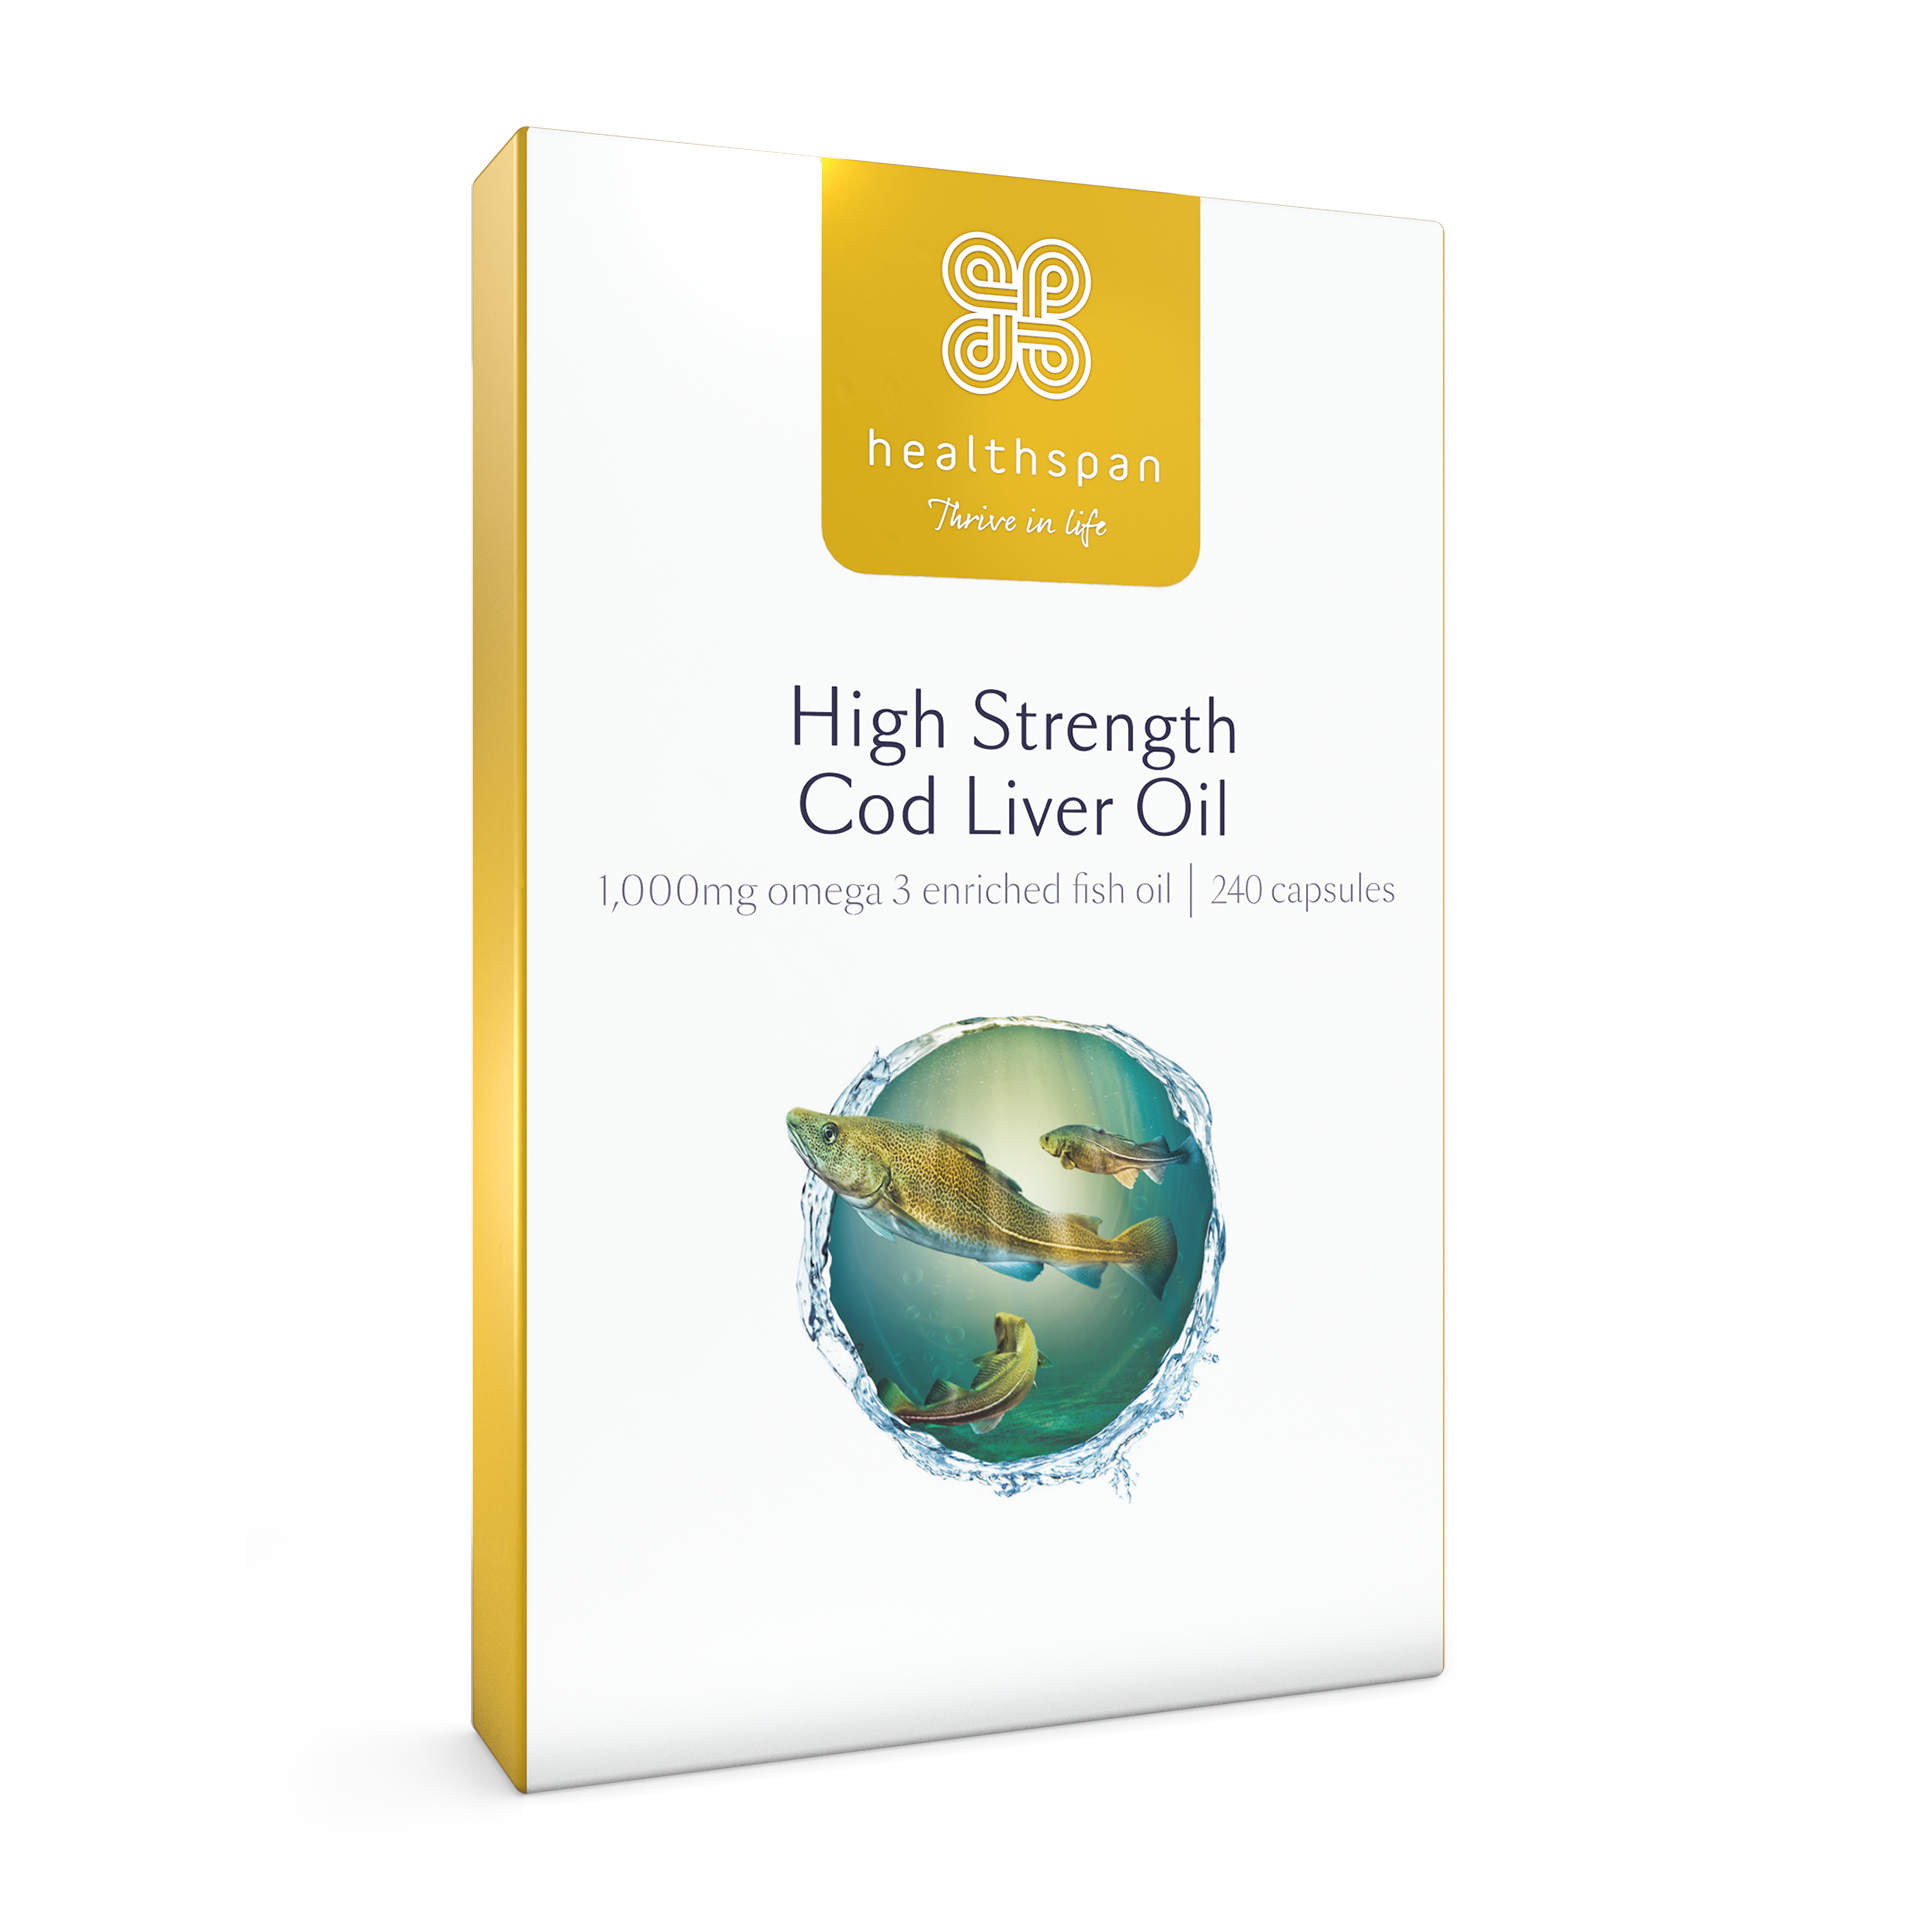 High Strength Cod Liver Oil 1,000mg 240 pack